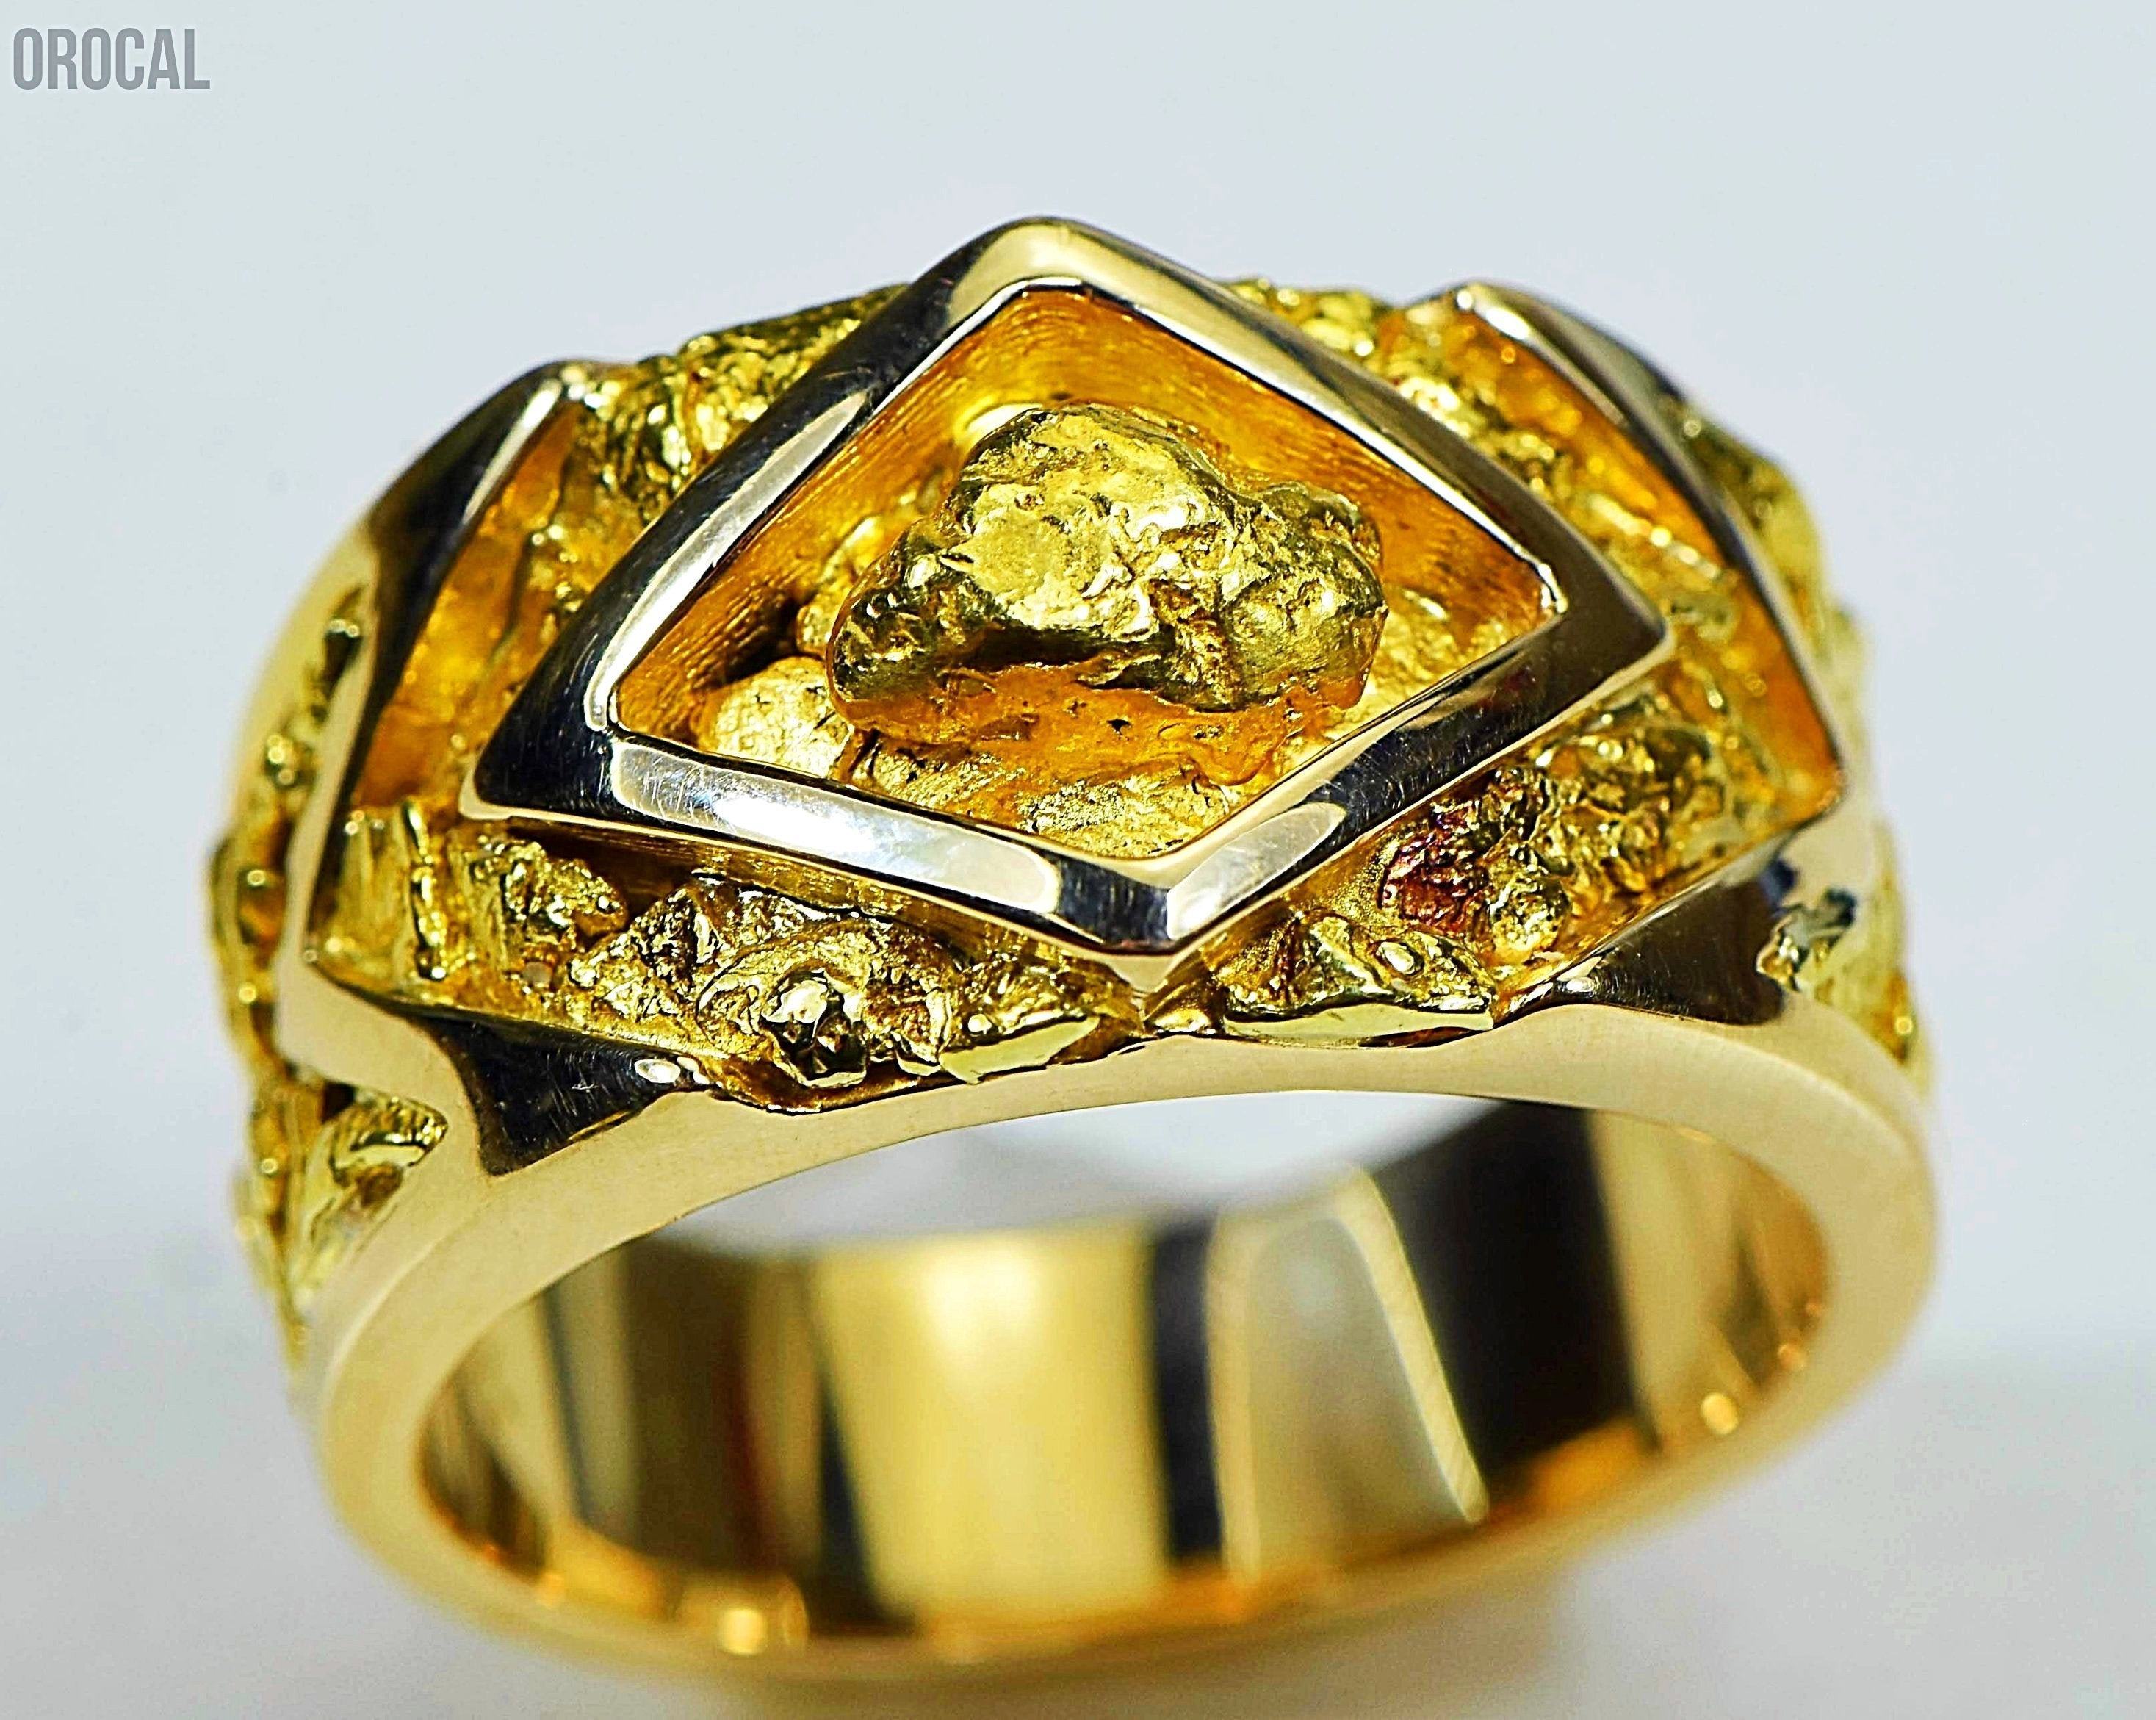 Gold Nugget Mens Ring Orocal Rm315 Genuine Hand Crafted Jewelry - 14K Casting